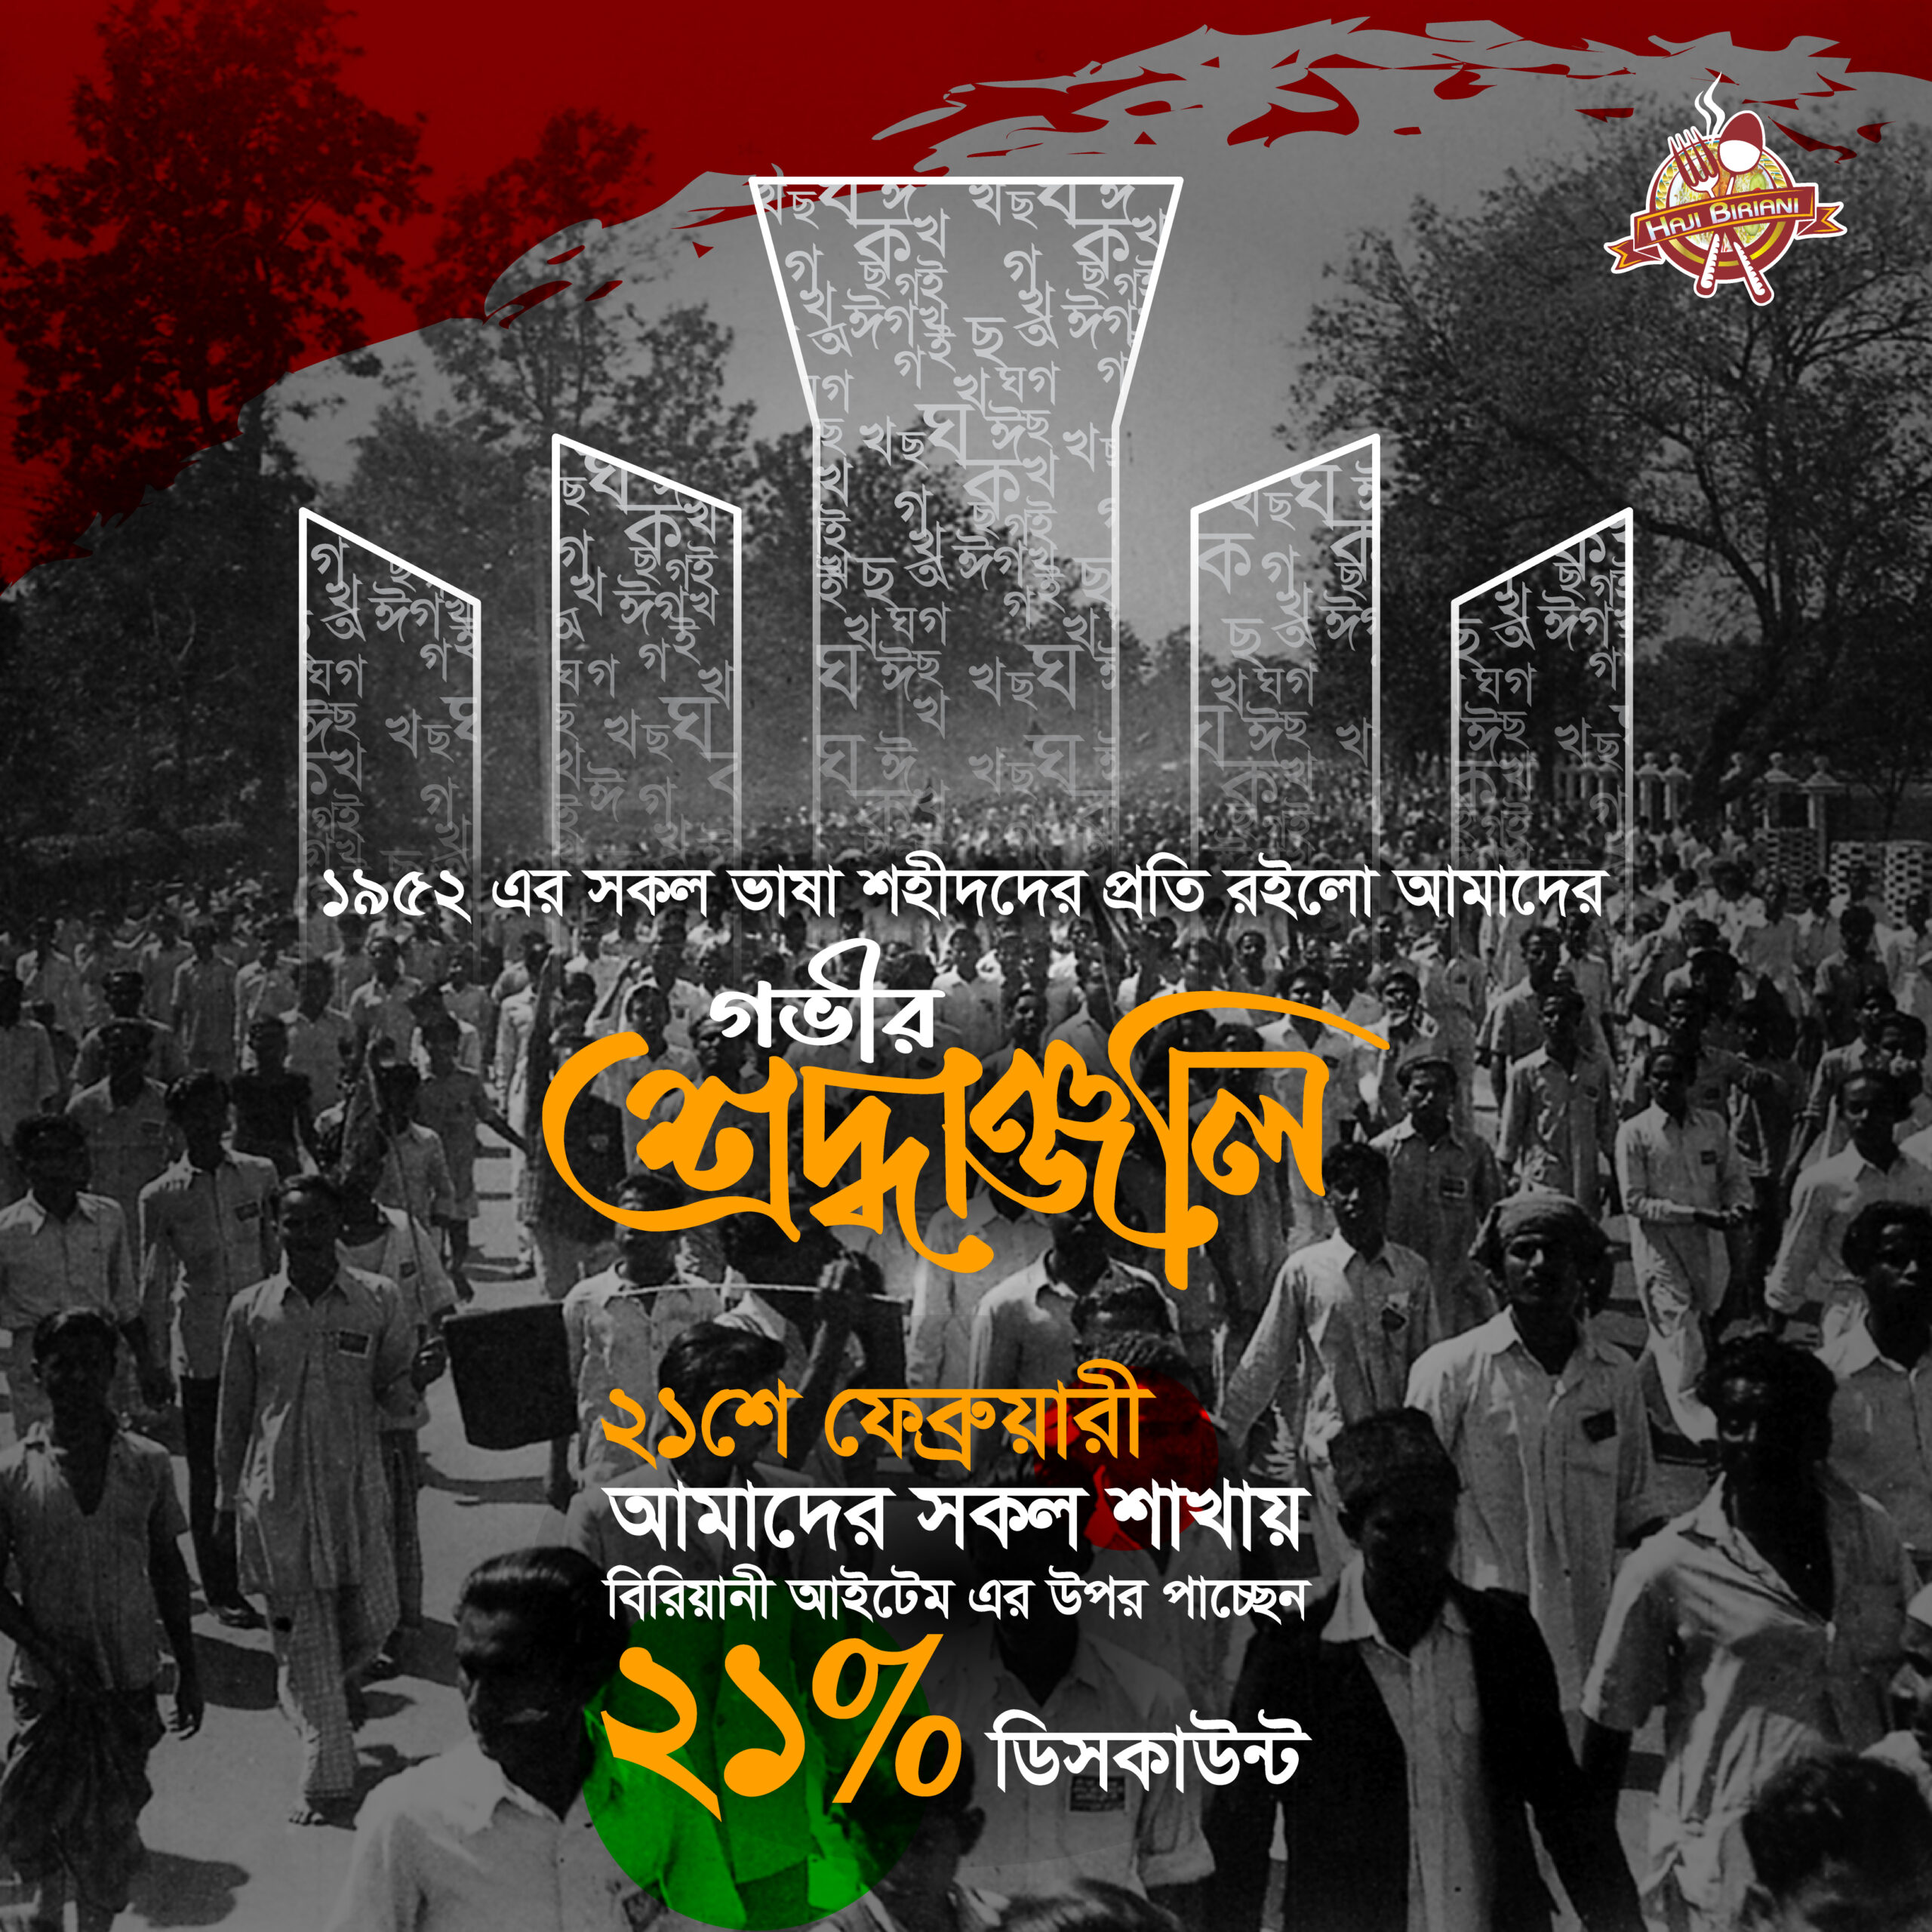 EKUSHEY DESIGN (21ST FEBRUARY)